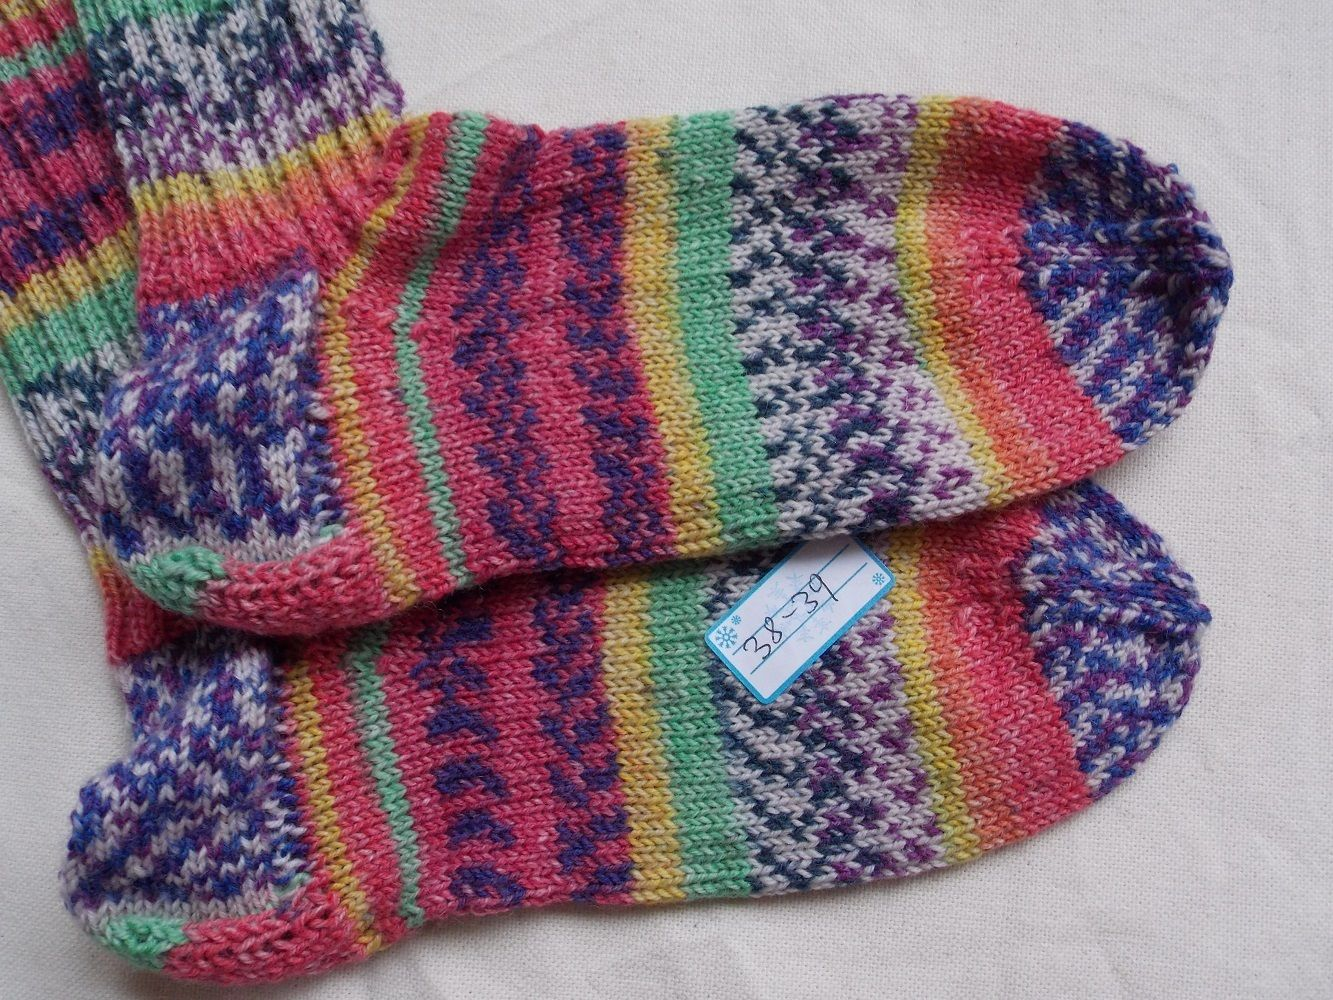 """This pair of socks I have knitted from a special Opal sockyarn. The yarn used, is dyed after the painting """"good morning city"""" of the austrian painter Hundertwasser."""